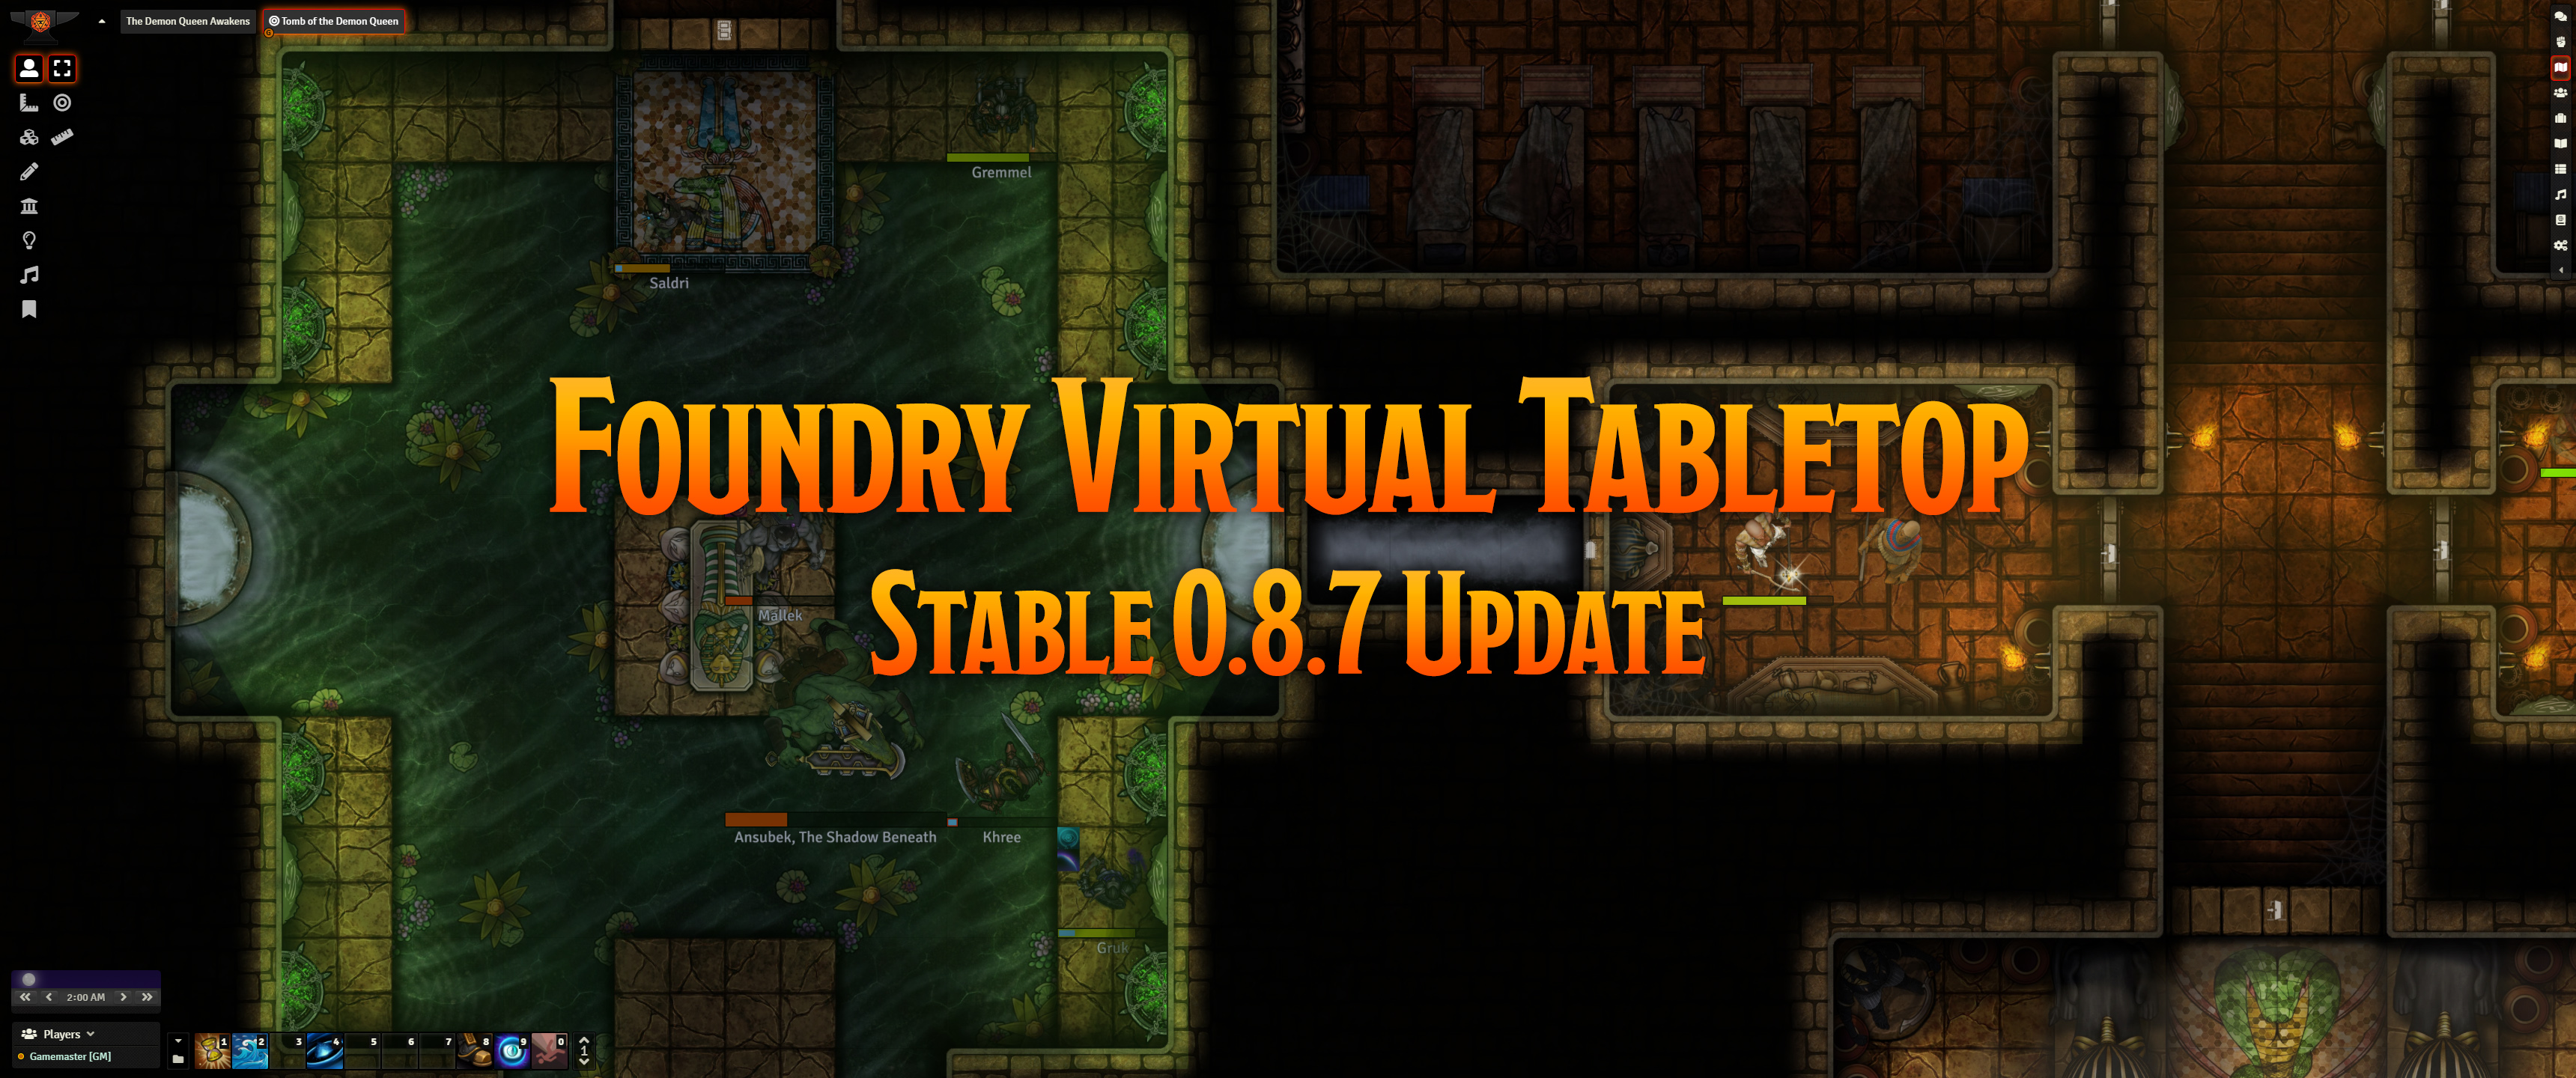 Release Notes for the Foundry Virtual Tabletop 0.8.7 update version